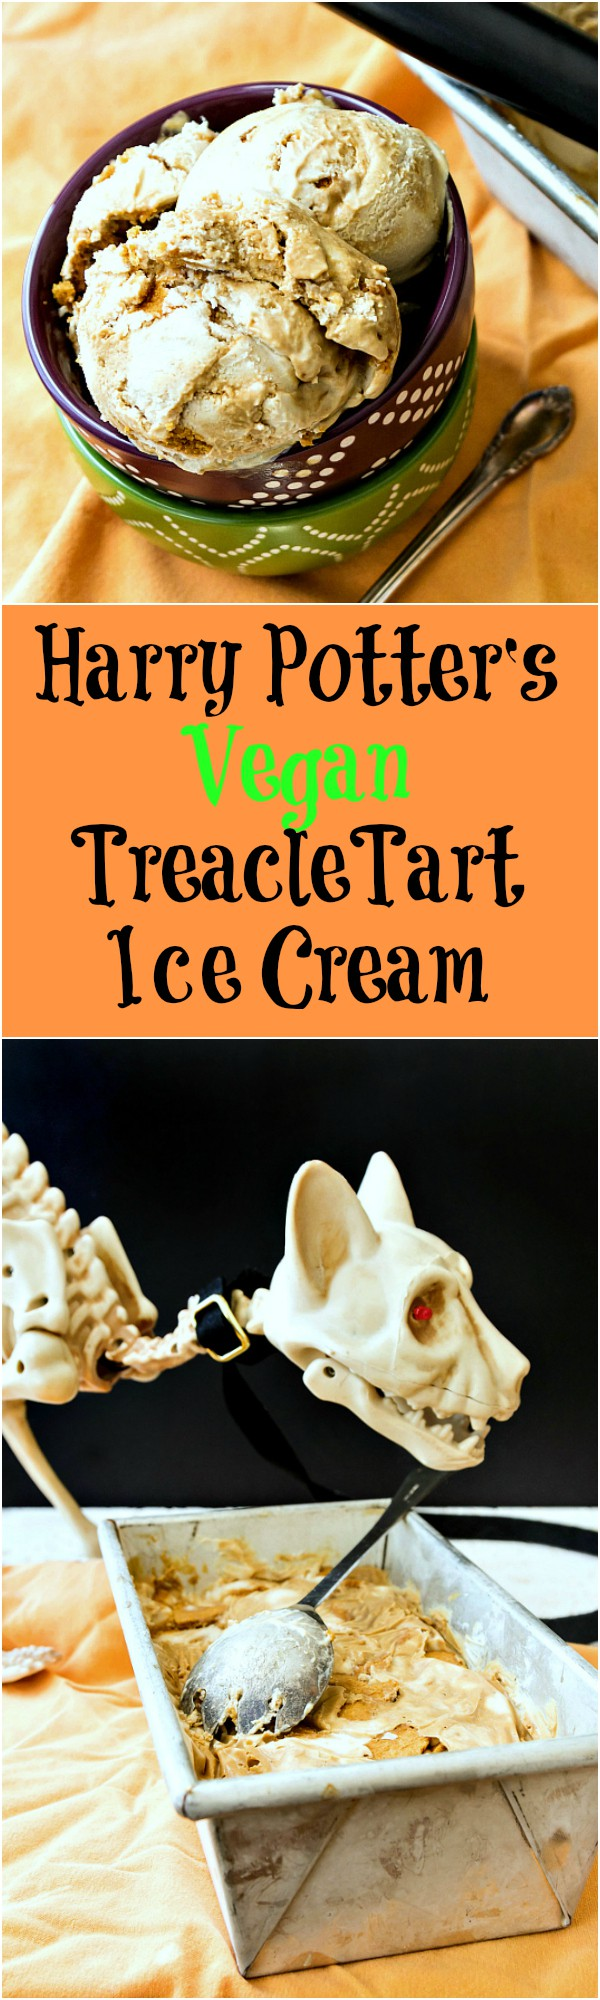 Meet Harry Potter's Vegan Treacle Tart Ice Cream! You know that treacle tarts are Harry's favorite dessert. This is what he'd eat if he wanted ice cream and was having some vegan buddies over to share. Make this Harry Potter-inspired ice cream recipe for your next Halloween Party! | pastrychefonline.com